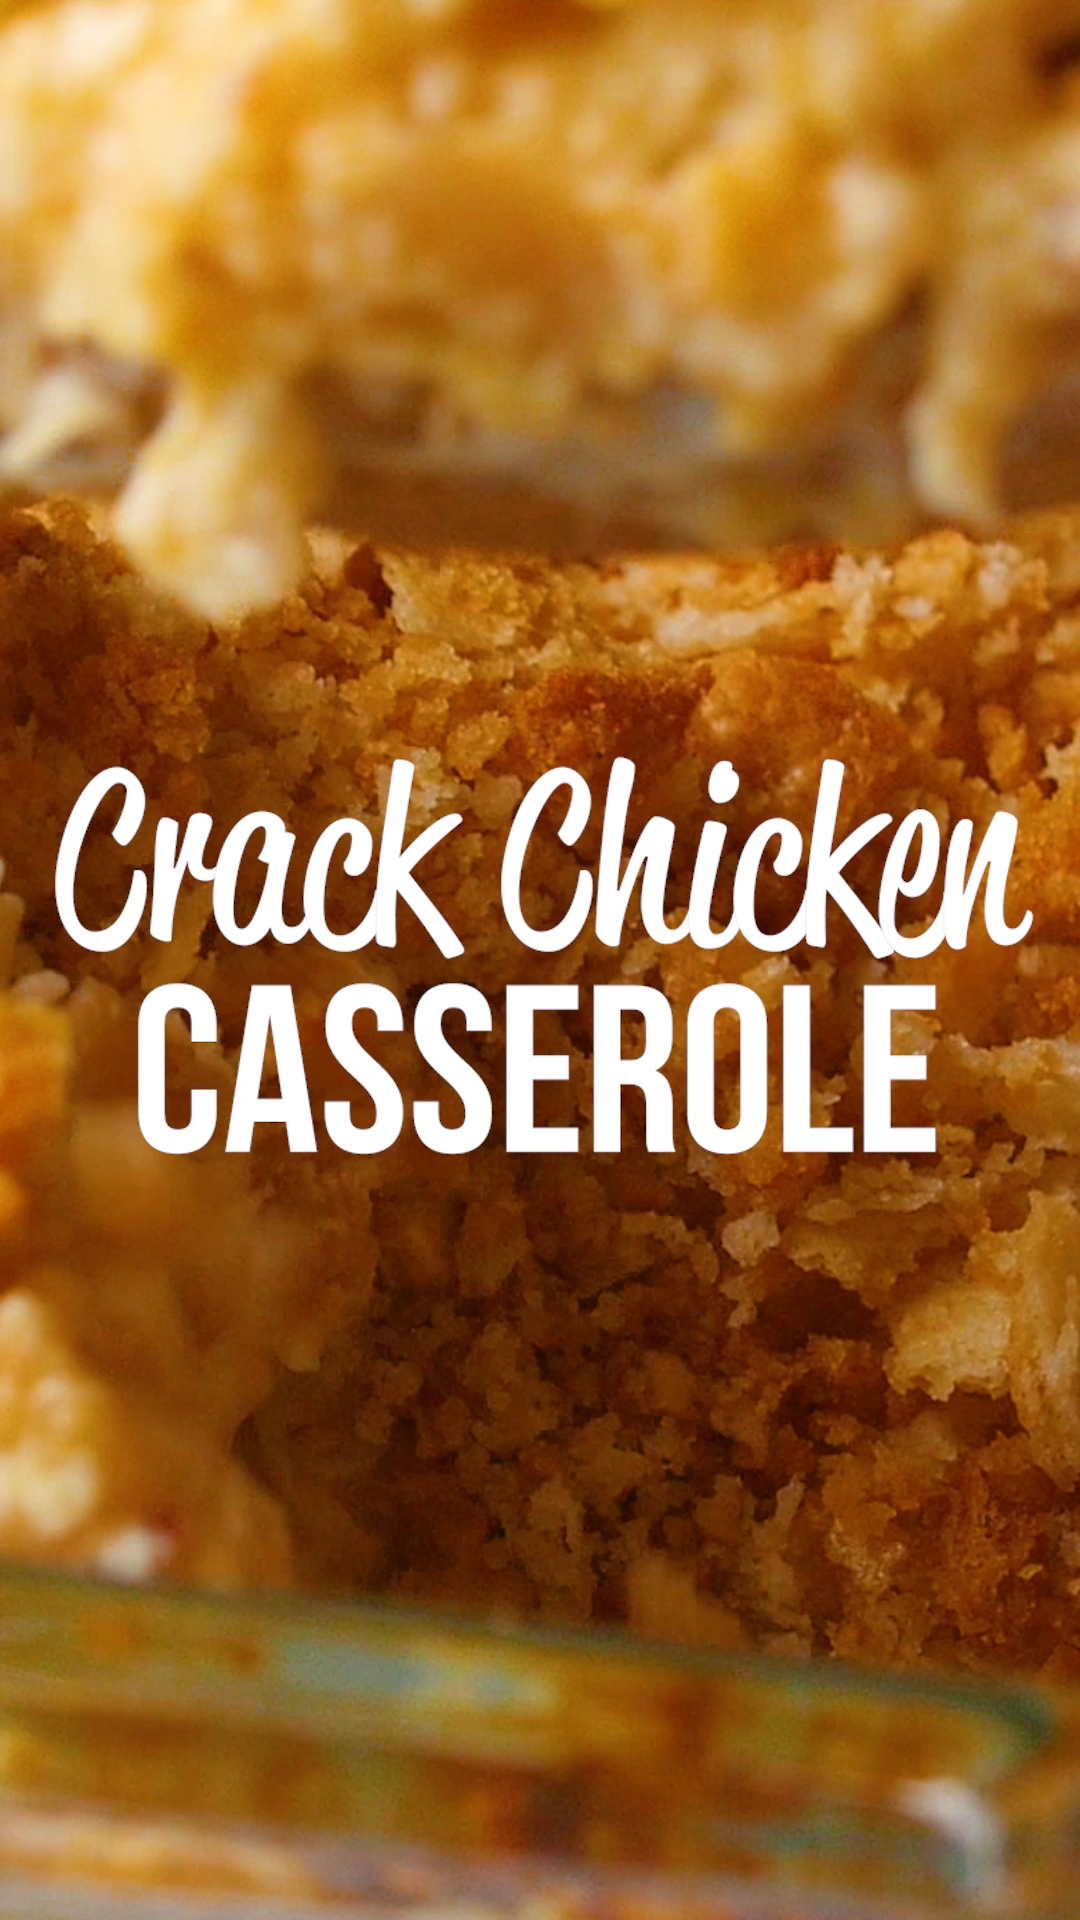 Crack Chicken Casserole Recipe #casserolerecipes